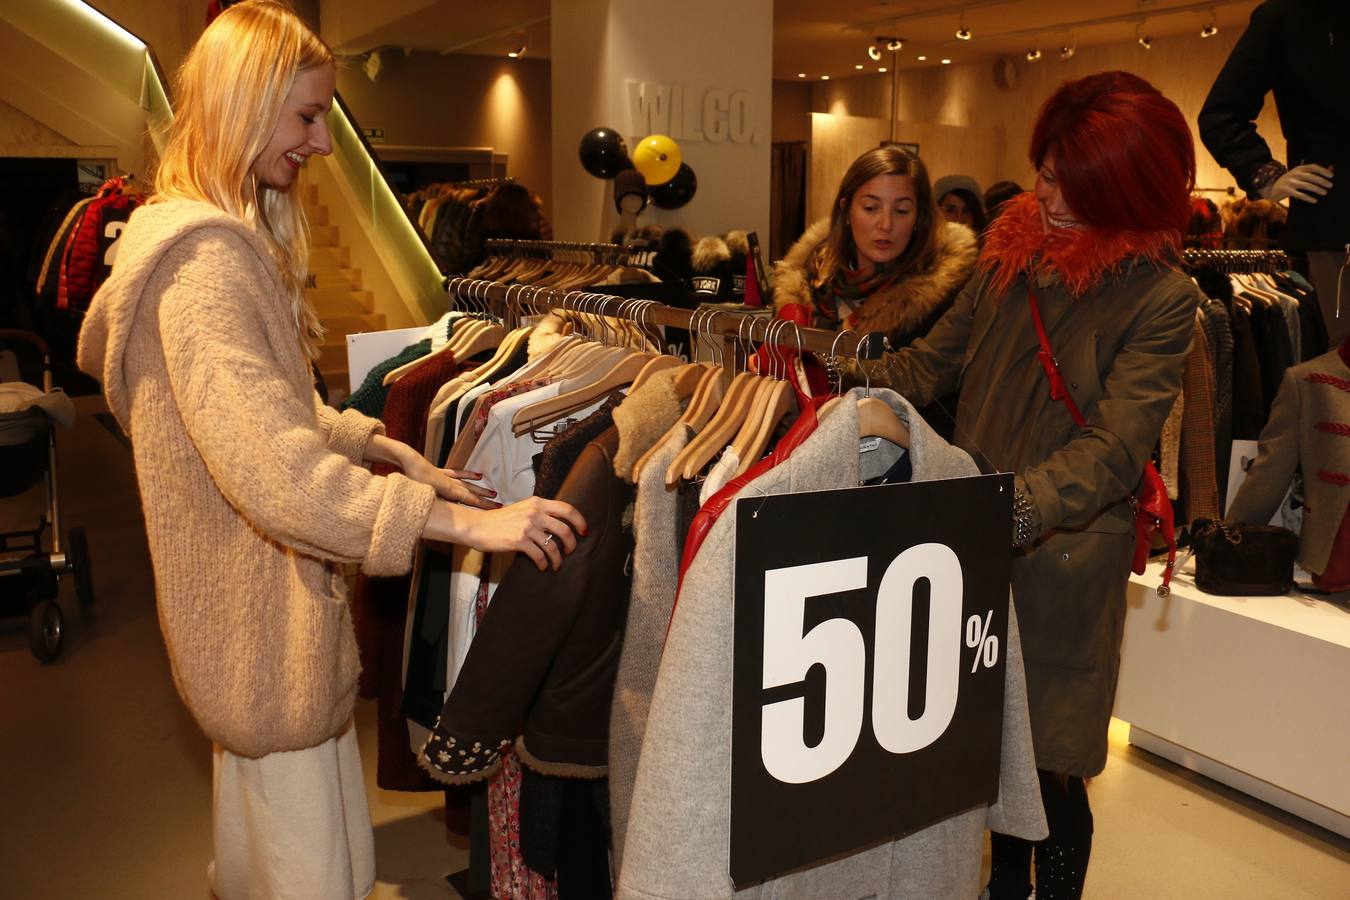 El 'Black Friday' cautiva a los vitorianos